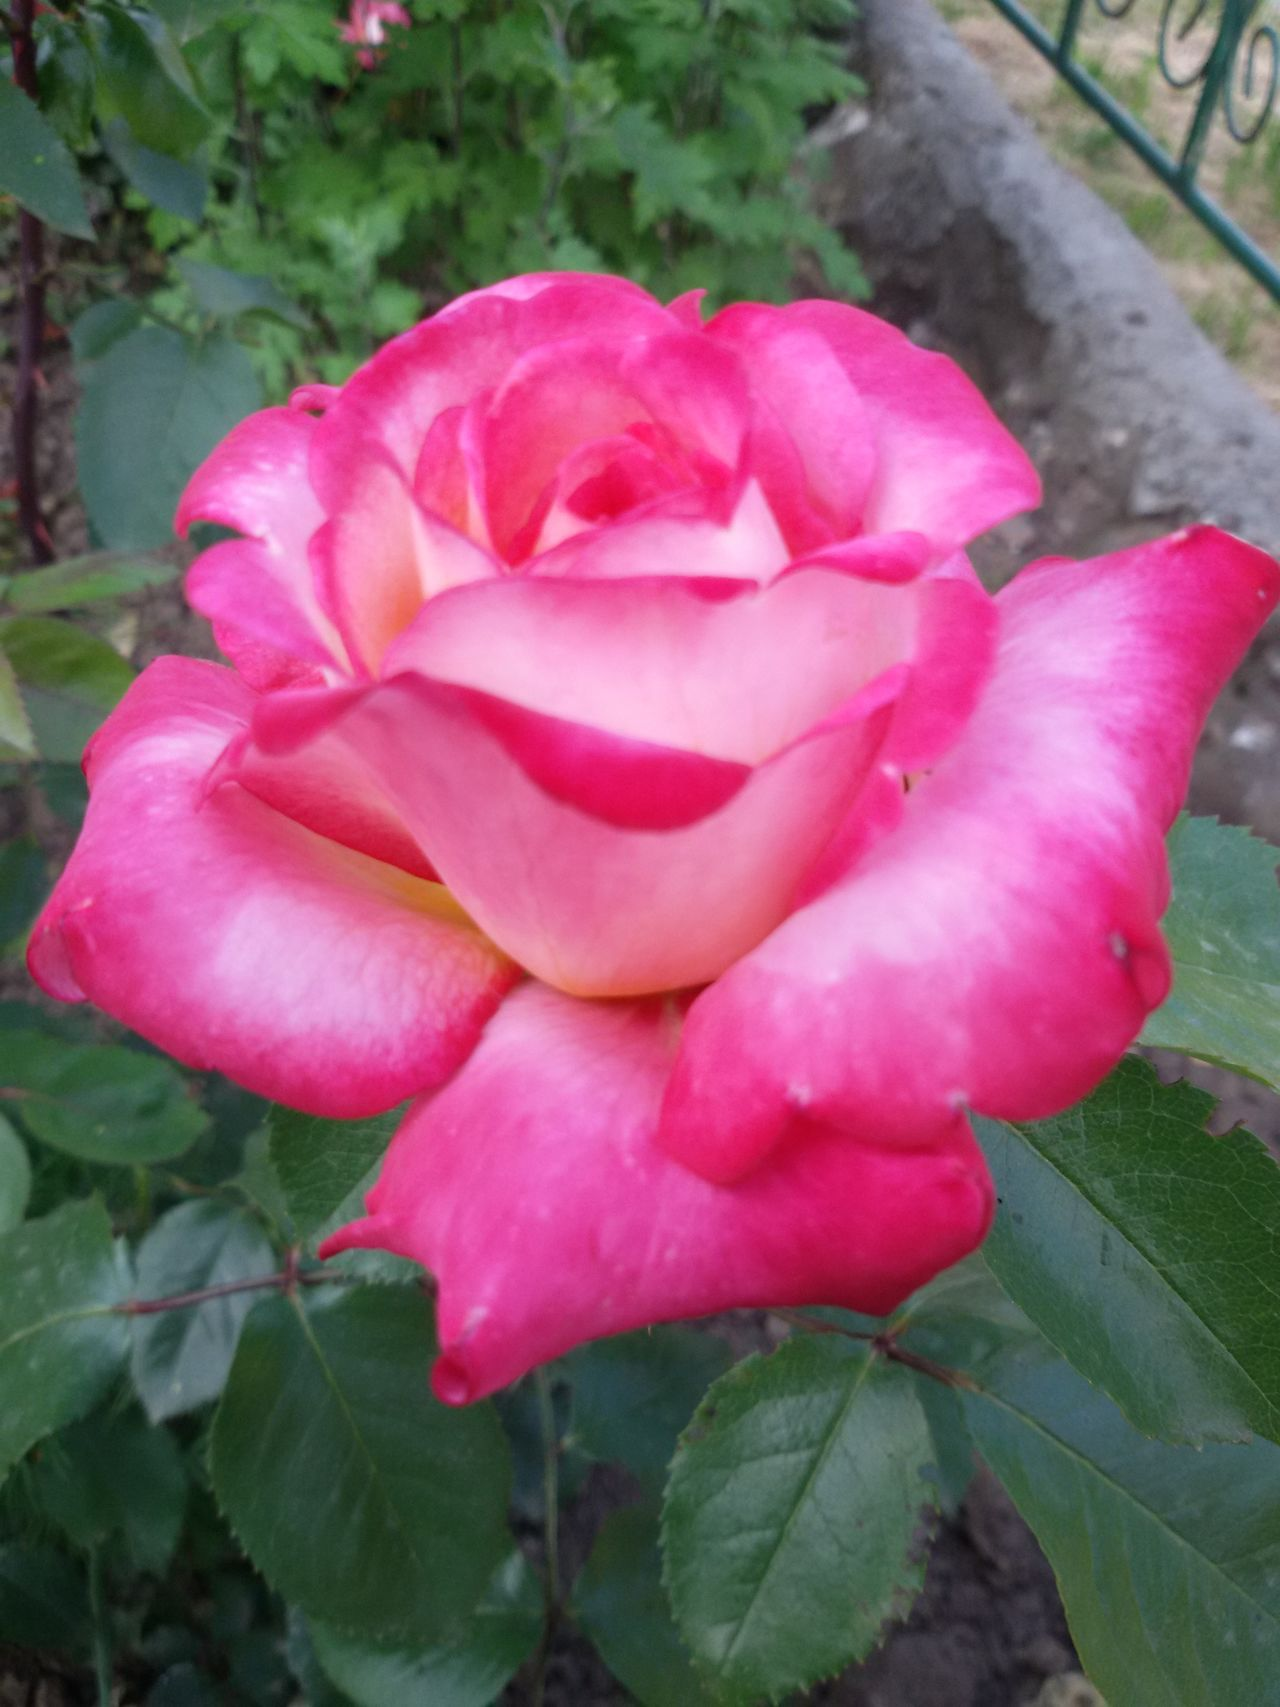 Beautifulrose Frommygarden Rosé Roses Roseflower Flower Bulgarian Rose FlowerpornFlower Flower Collection Rose🌹 Flower Fragility Freshness Petal Close-up Flower Head Growth Pink Color Beauty In Nature Rose - Flower Single Flower Nature Plant Stem